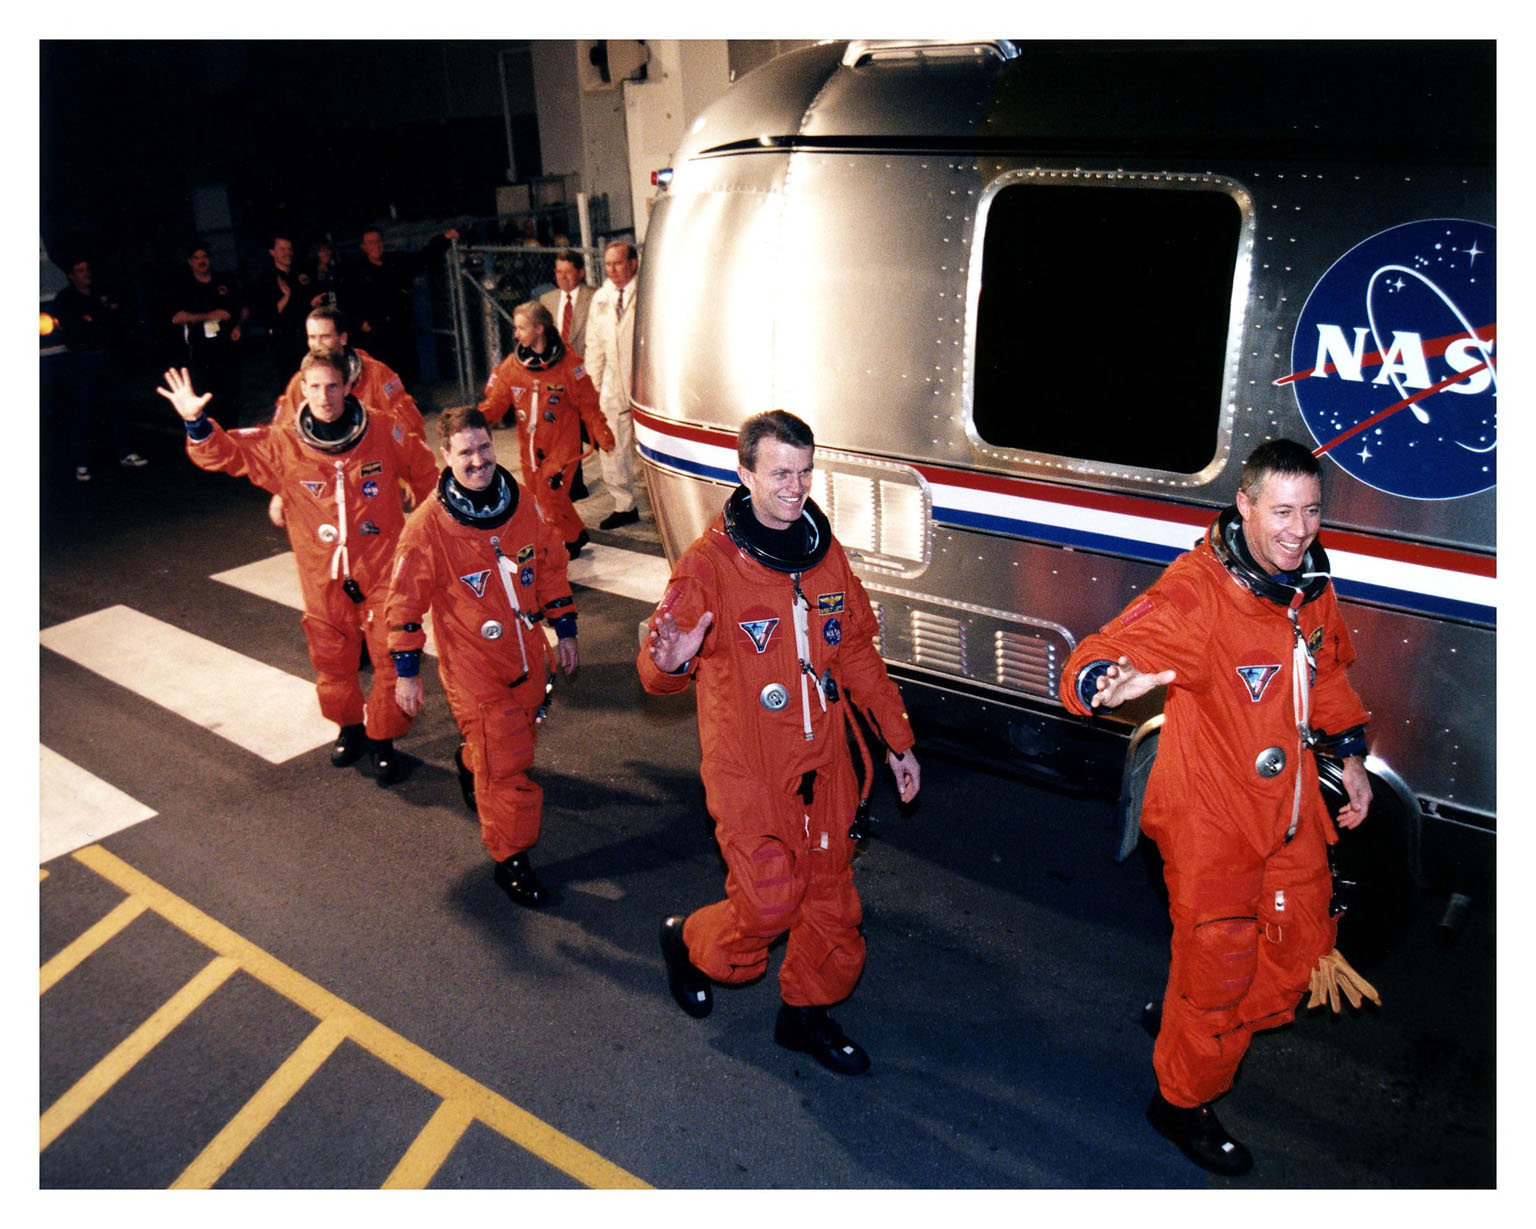 """Greeted by cheers from wellwishers at KSC and eager for their venture into space on the fifth Shuttle-Mir docking mission, the STS-81 astronauts depart the Operations and Checkout Building and board the Astrovan for their 25-minute trip to Launch Pad 39B. Leading the six-member crew is Mission Commander Michael A. Baker, followed by Pilot Brent W. Jett, Jr. Behind them are Mission Specialists John M. Grunsfeld, Jerry Linenger, Peter J. K. """"Jeff"""" Wisoff, and Marsha S. Ivins. Once at the pad, they will take their positions in the crew cabin of the Space Shuttle Atlantis to await a liftoff during a seven-minute window that will open at 4:27 a.m. EST, January 12"""